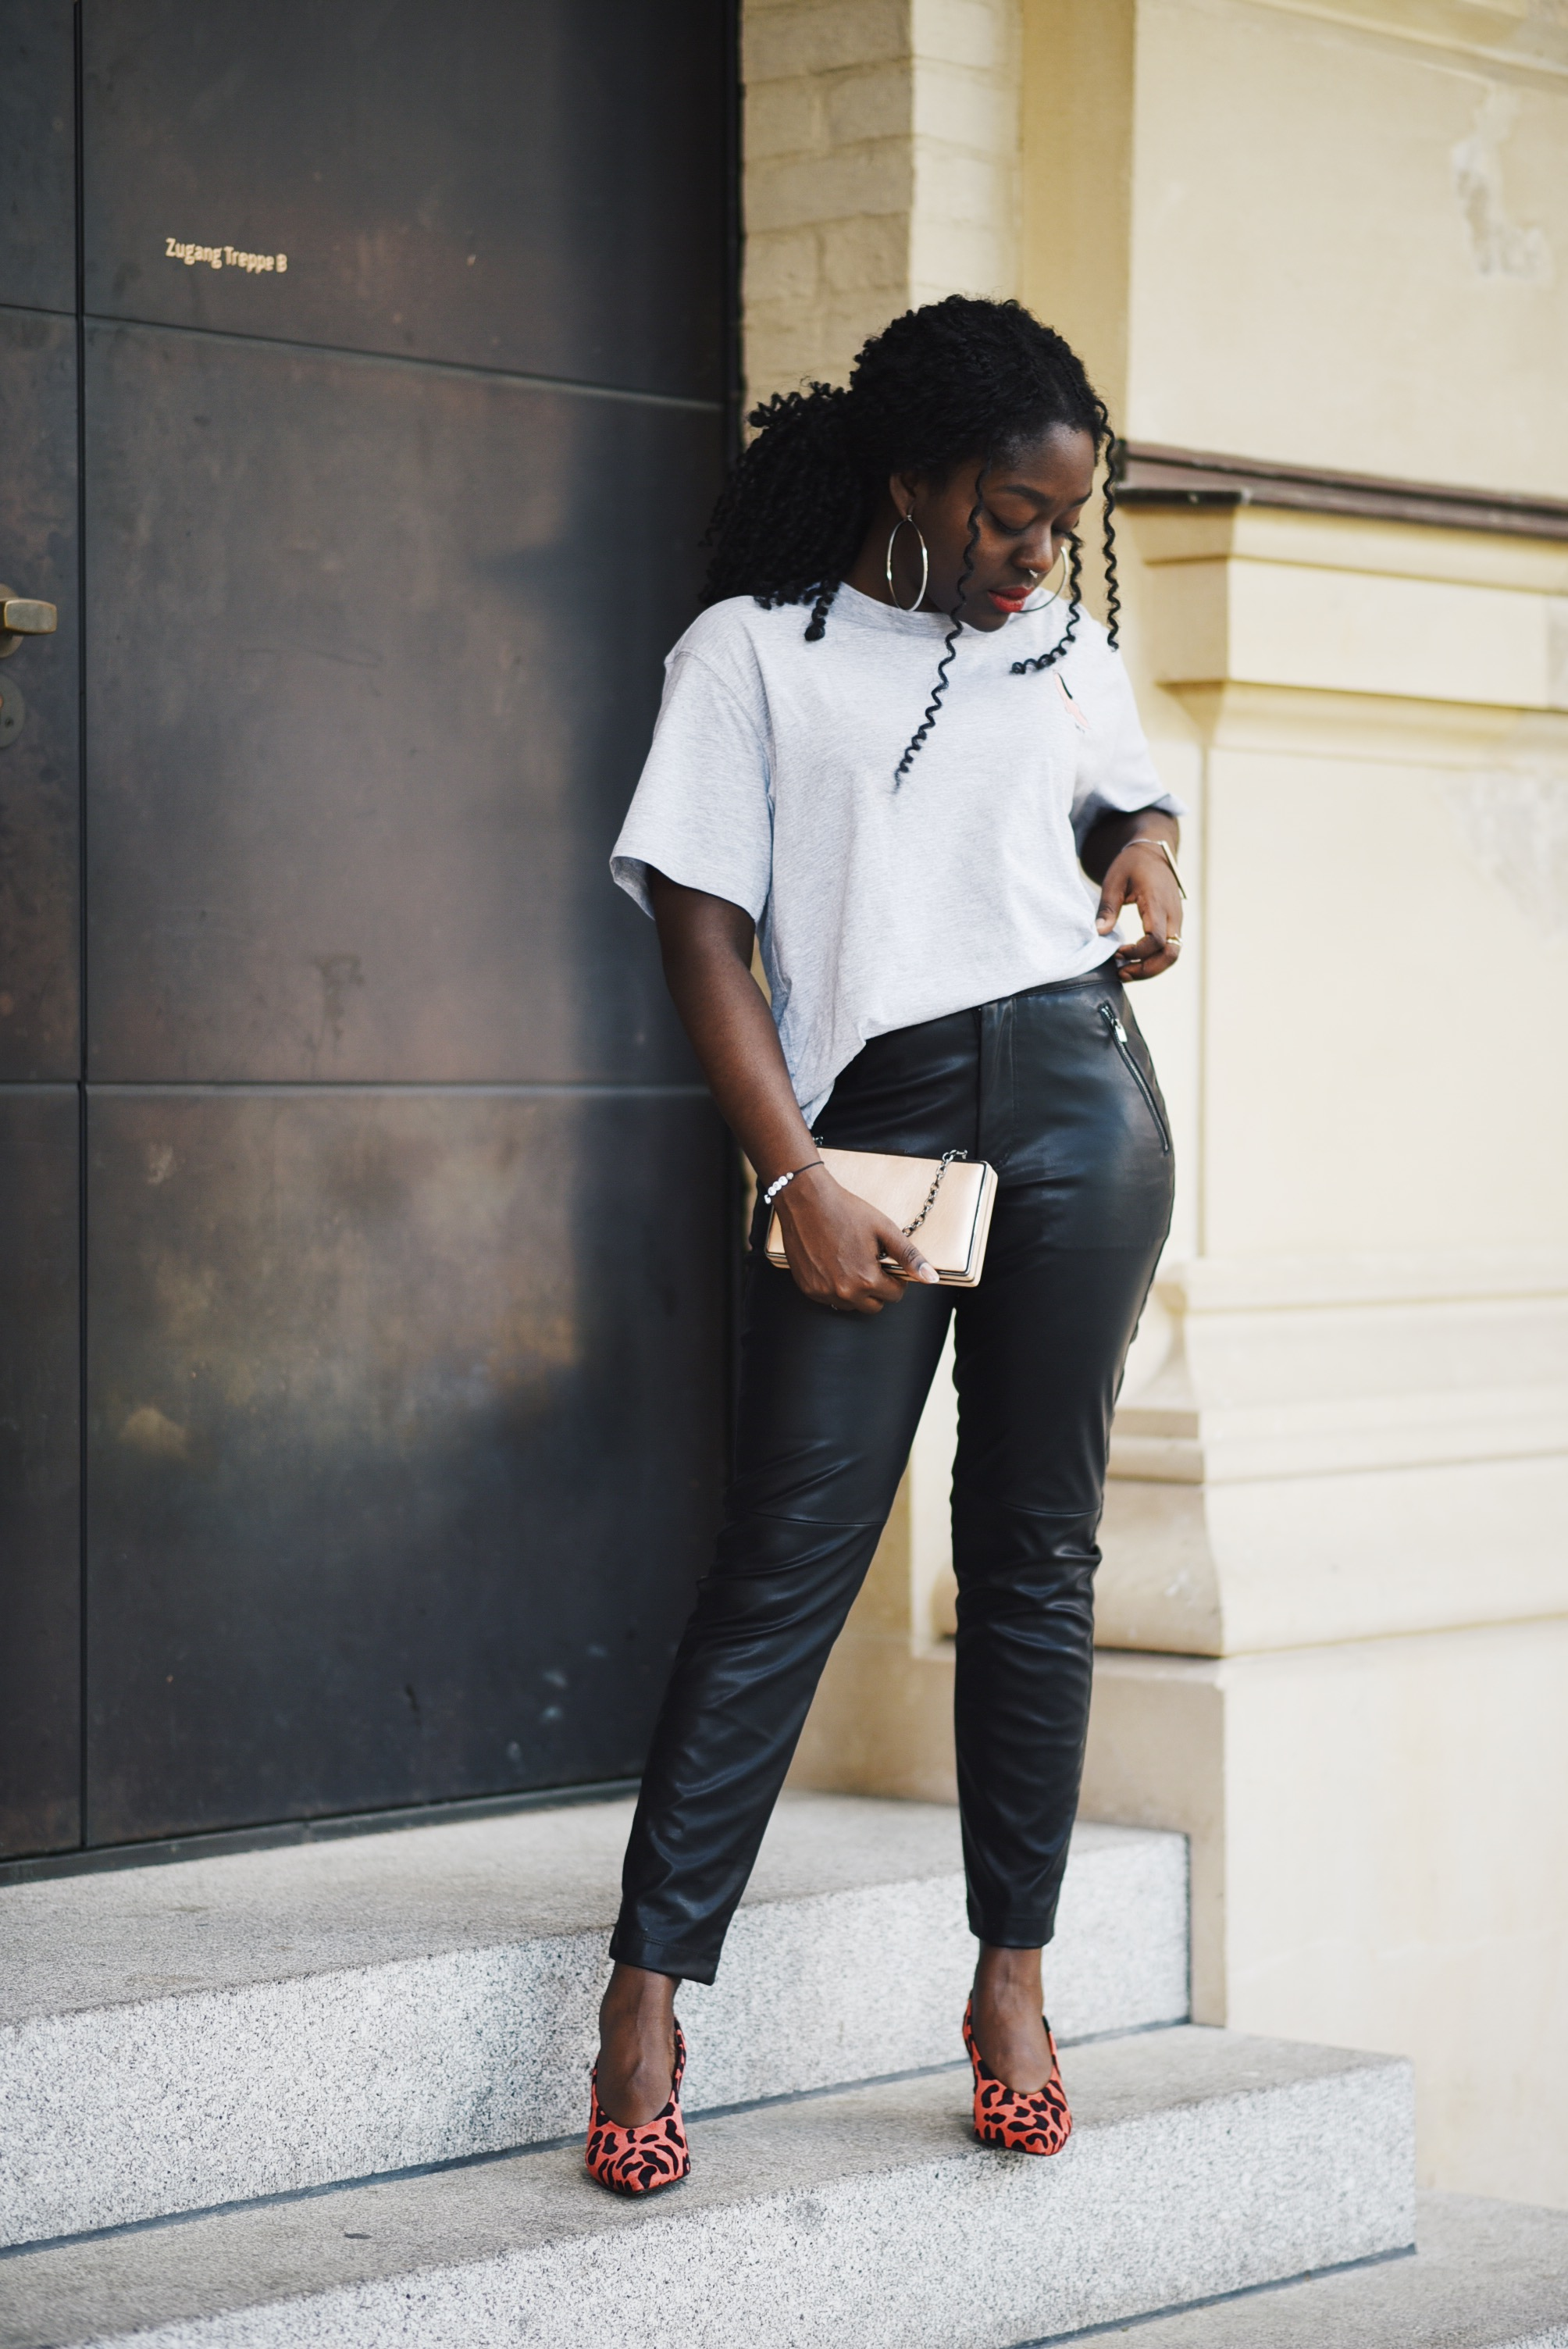 Lois Opoku Leather Pants Style Fashion Blogger